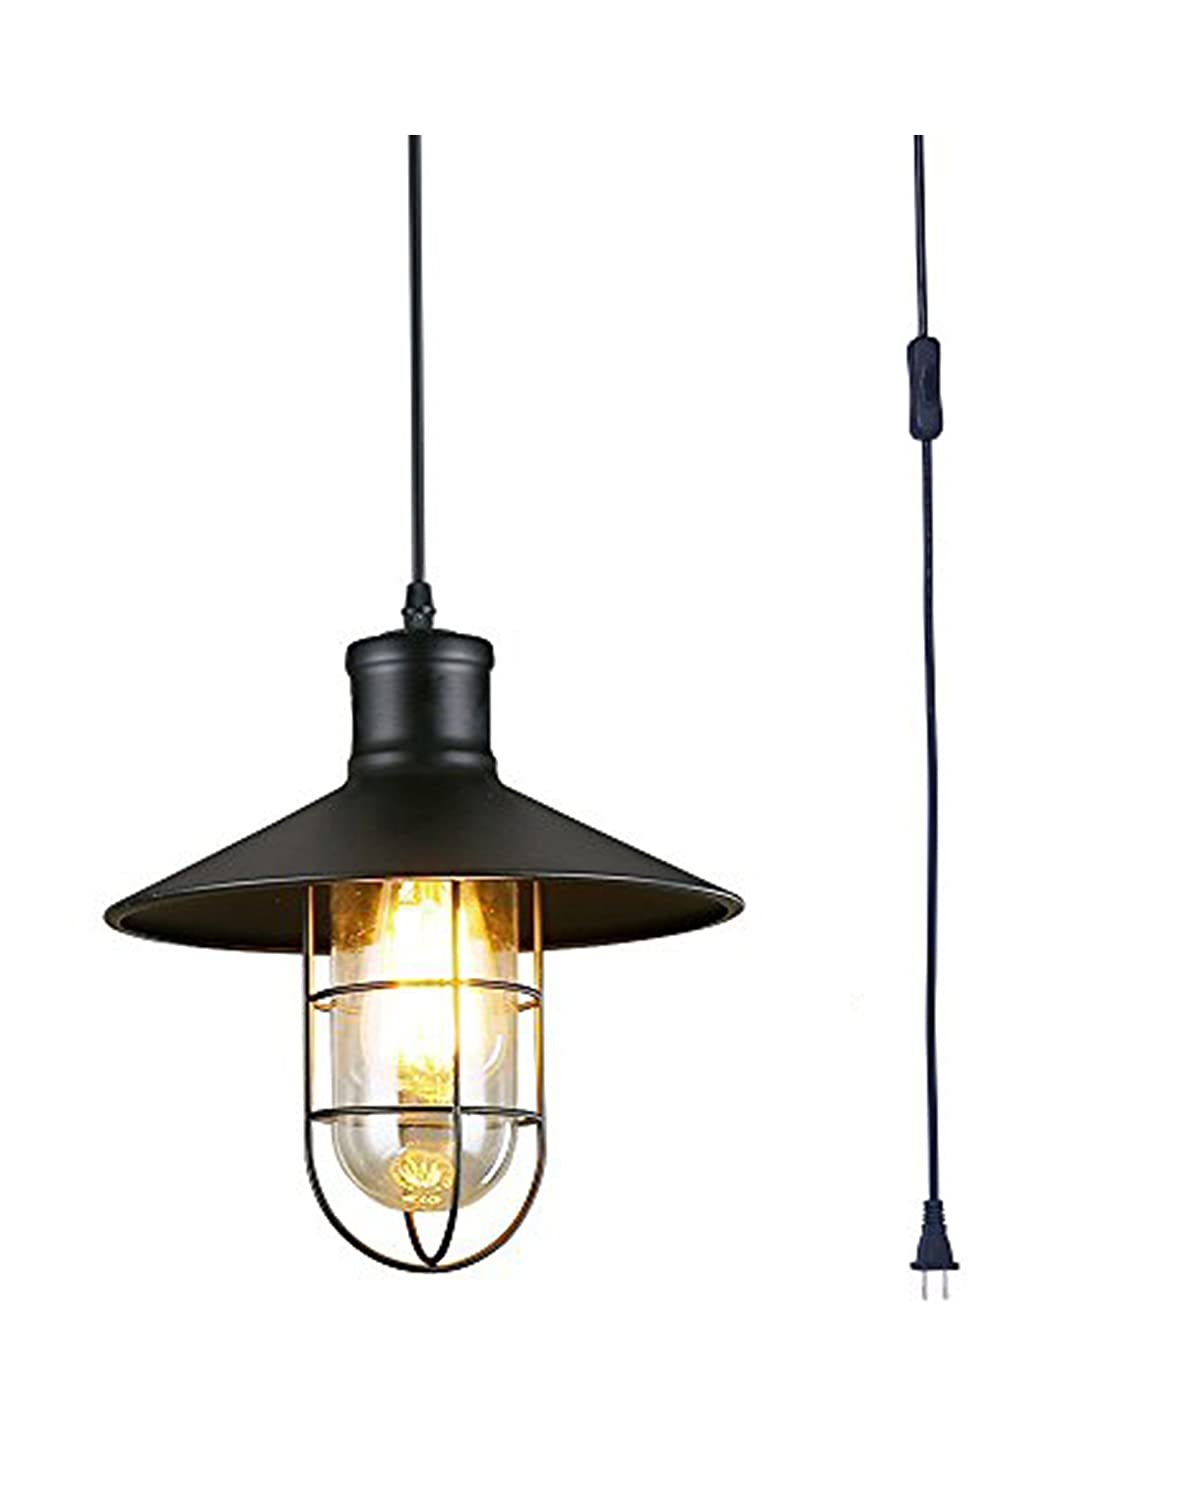 Pendant light plug in industrial barn pendant light hanging light fixture with plug in cord cage farmhouse pendant lighting for kitchen black plug in